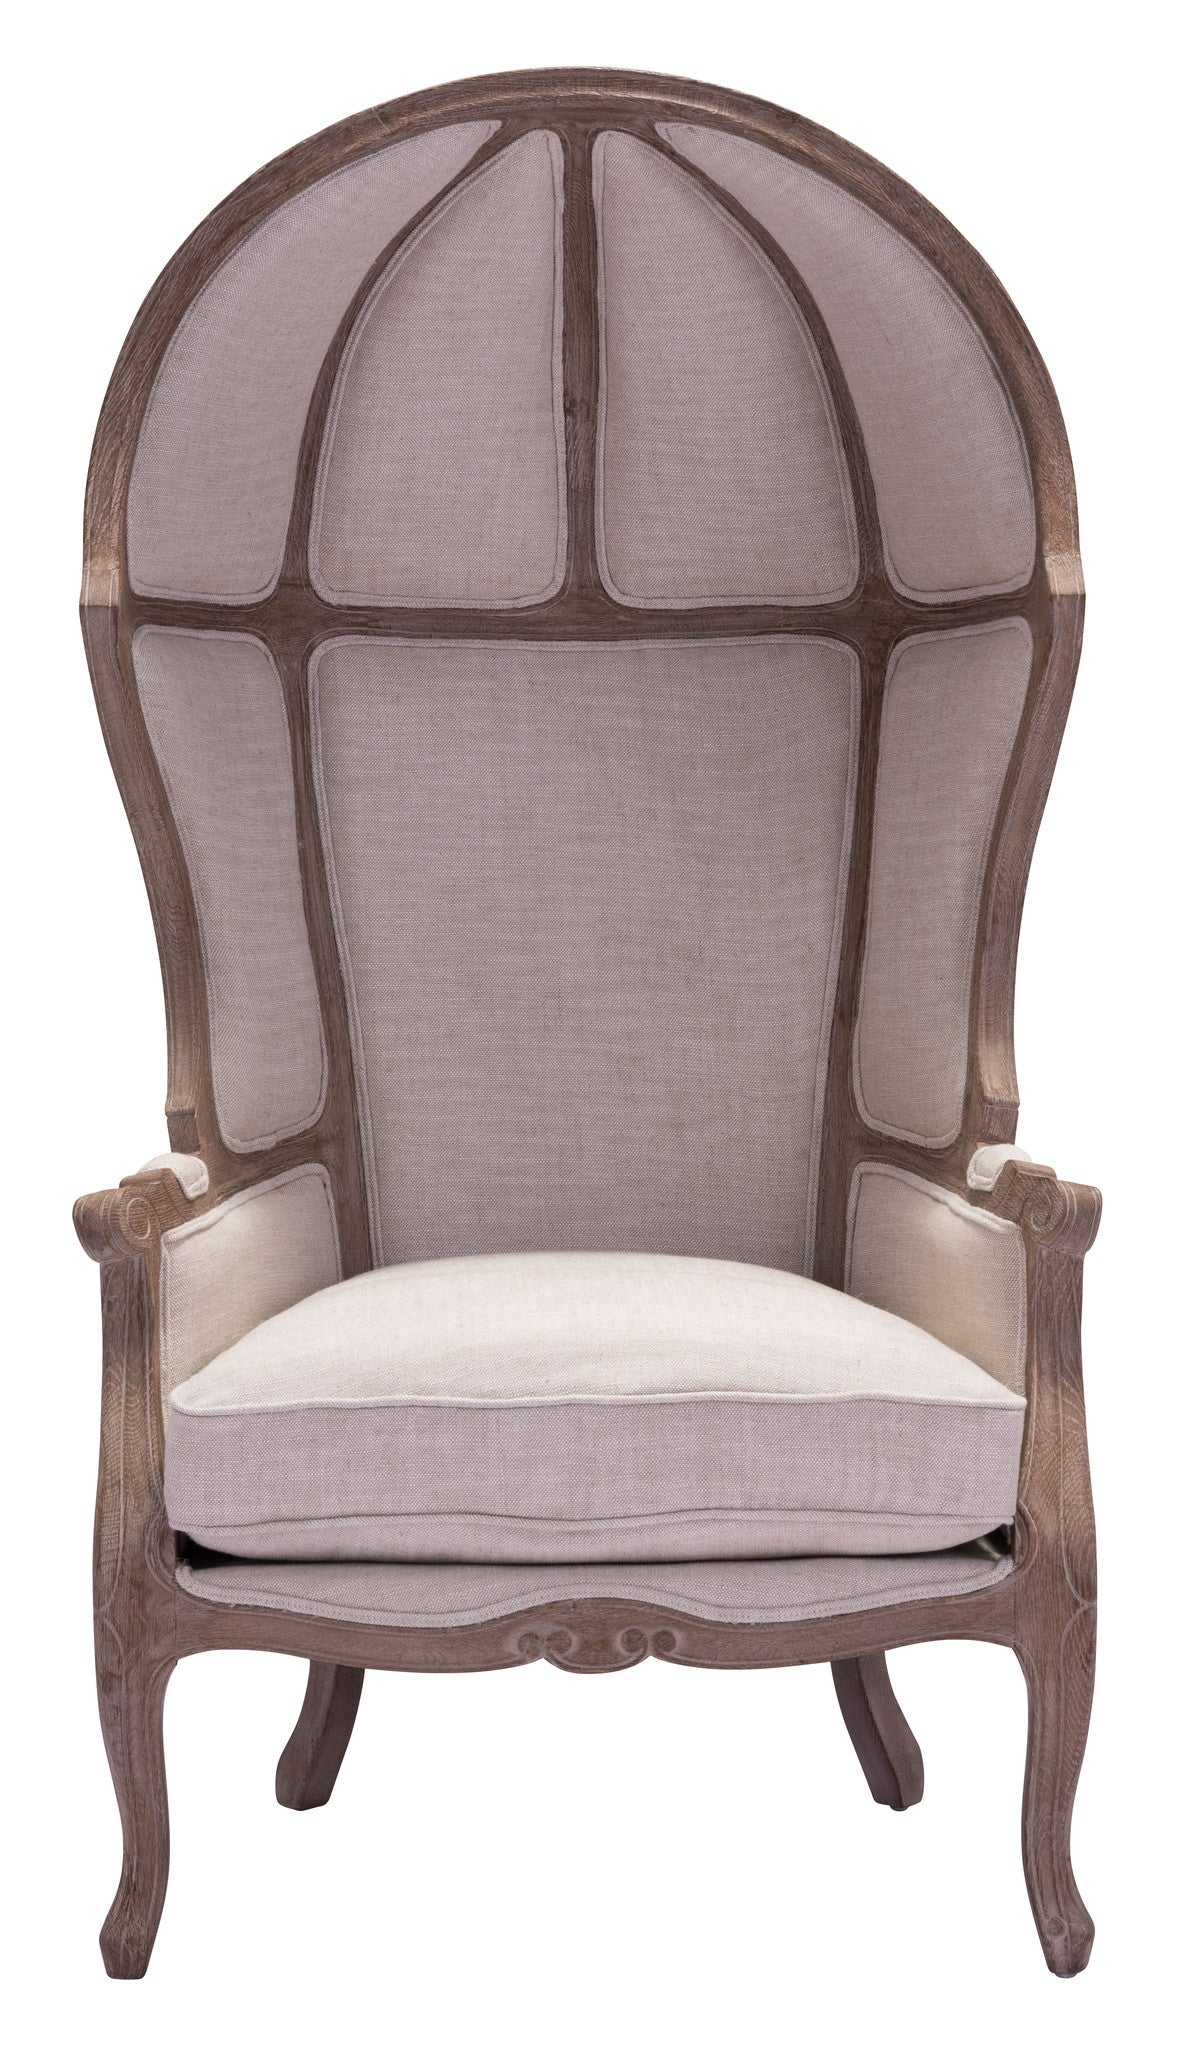 Ellis Extra Tall Chair with Sculpted Wood Frame & Beige Fabric